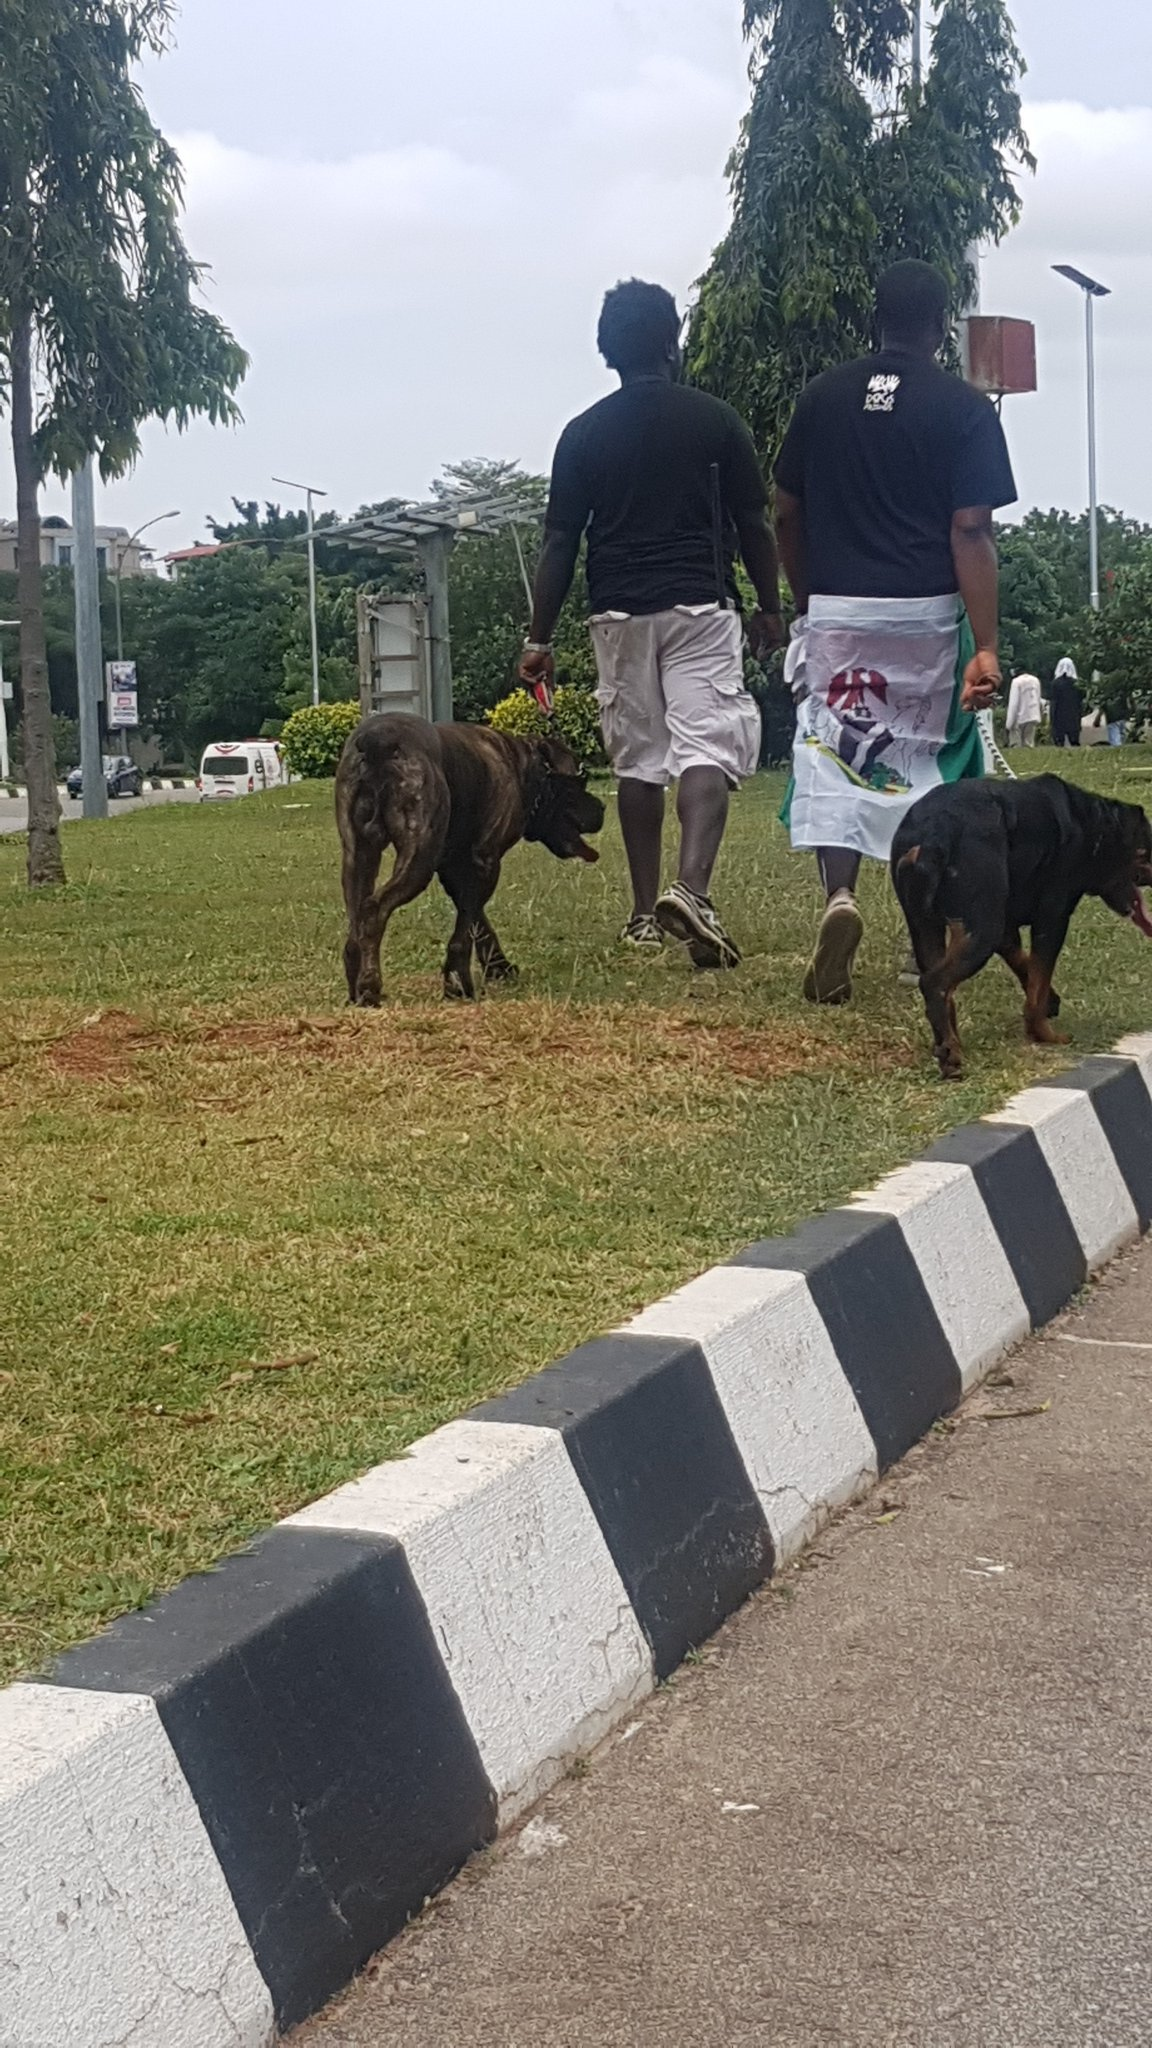 #EndSARS: Thugs allegedly back down after protesters arrived with fierce dogs at protest location in Abuja (photo) 10